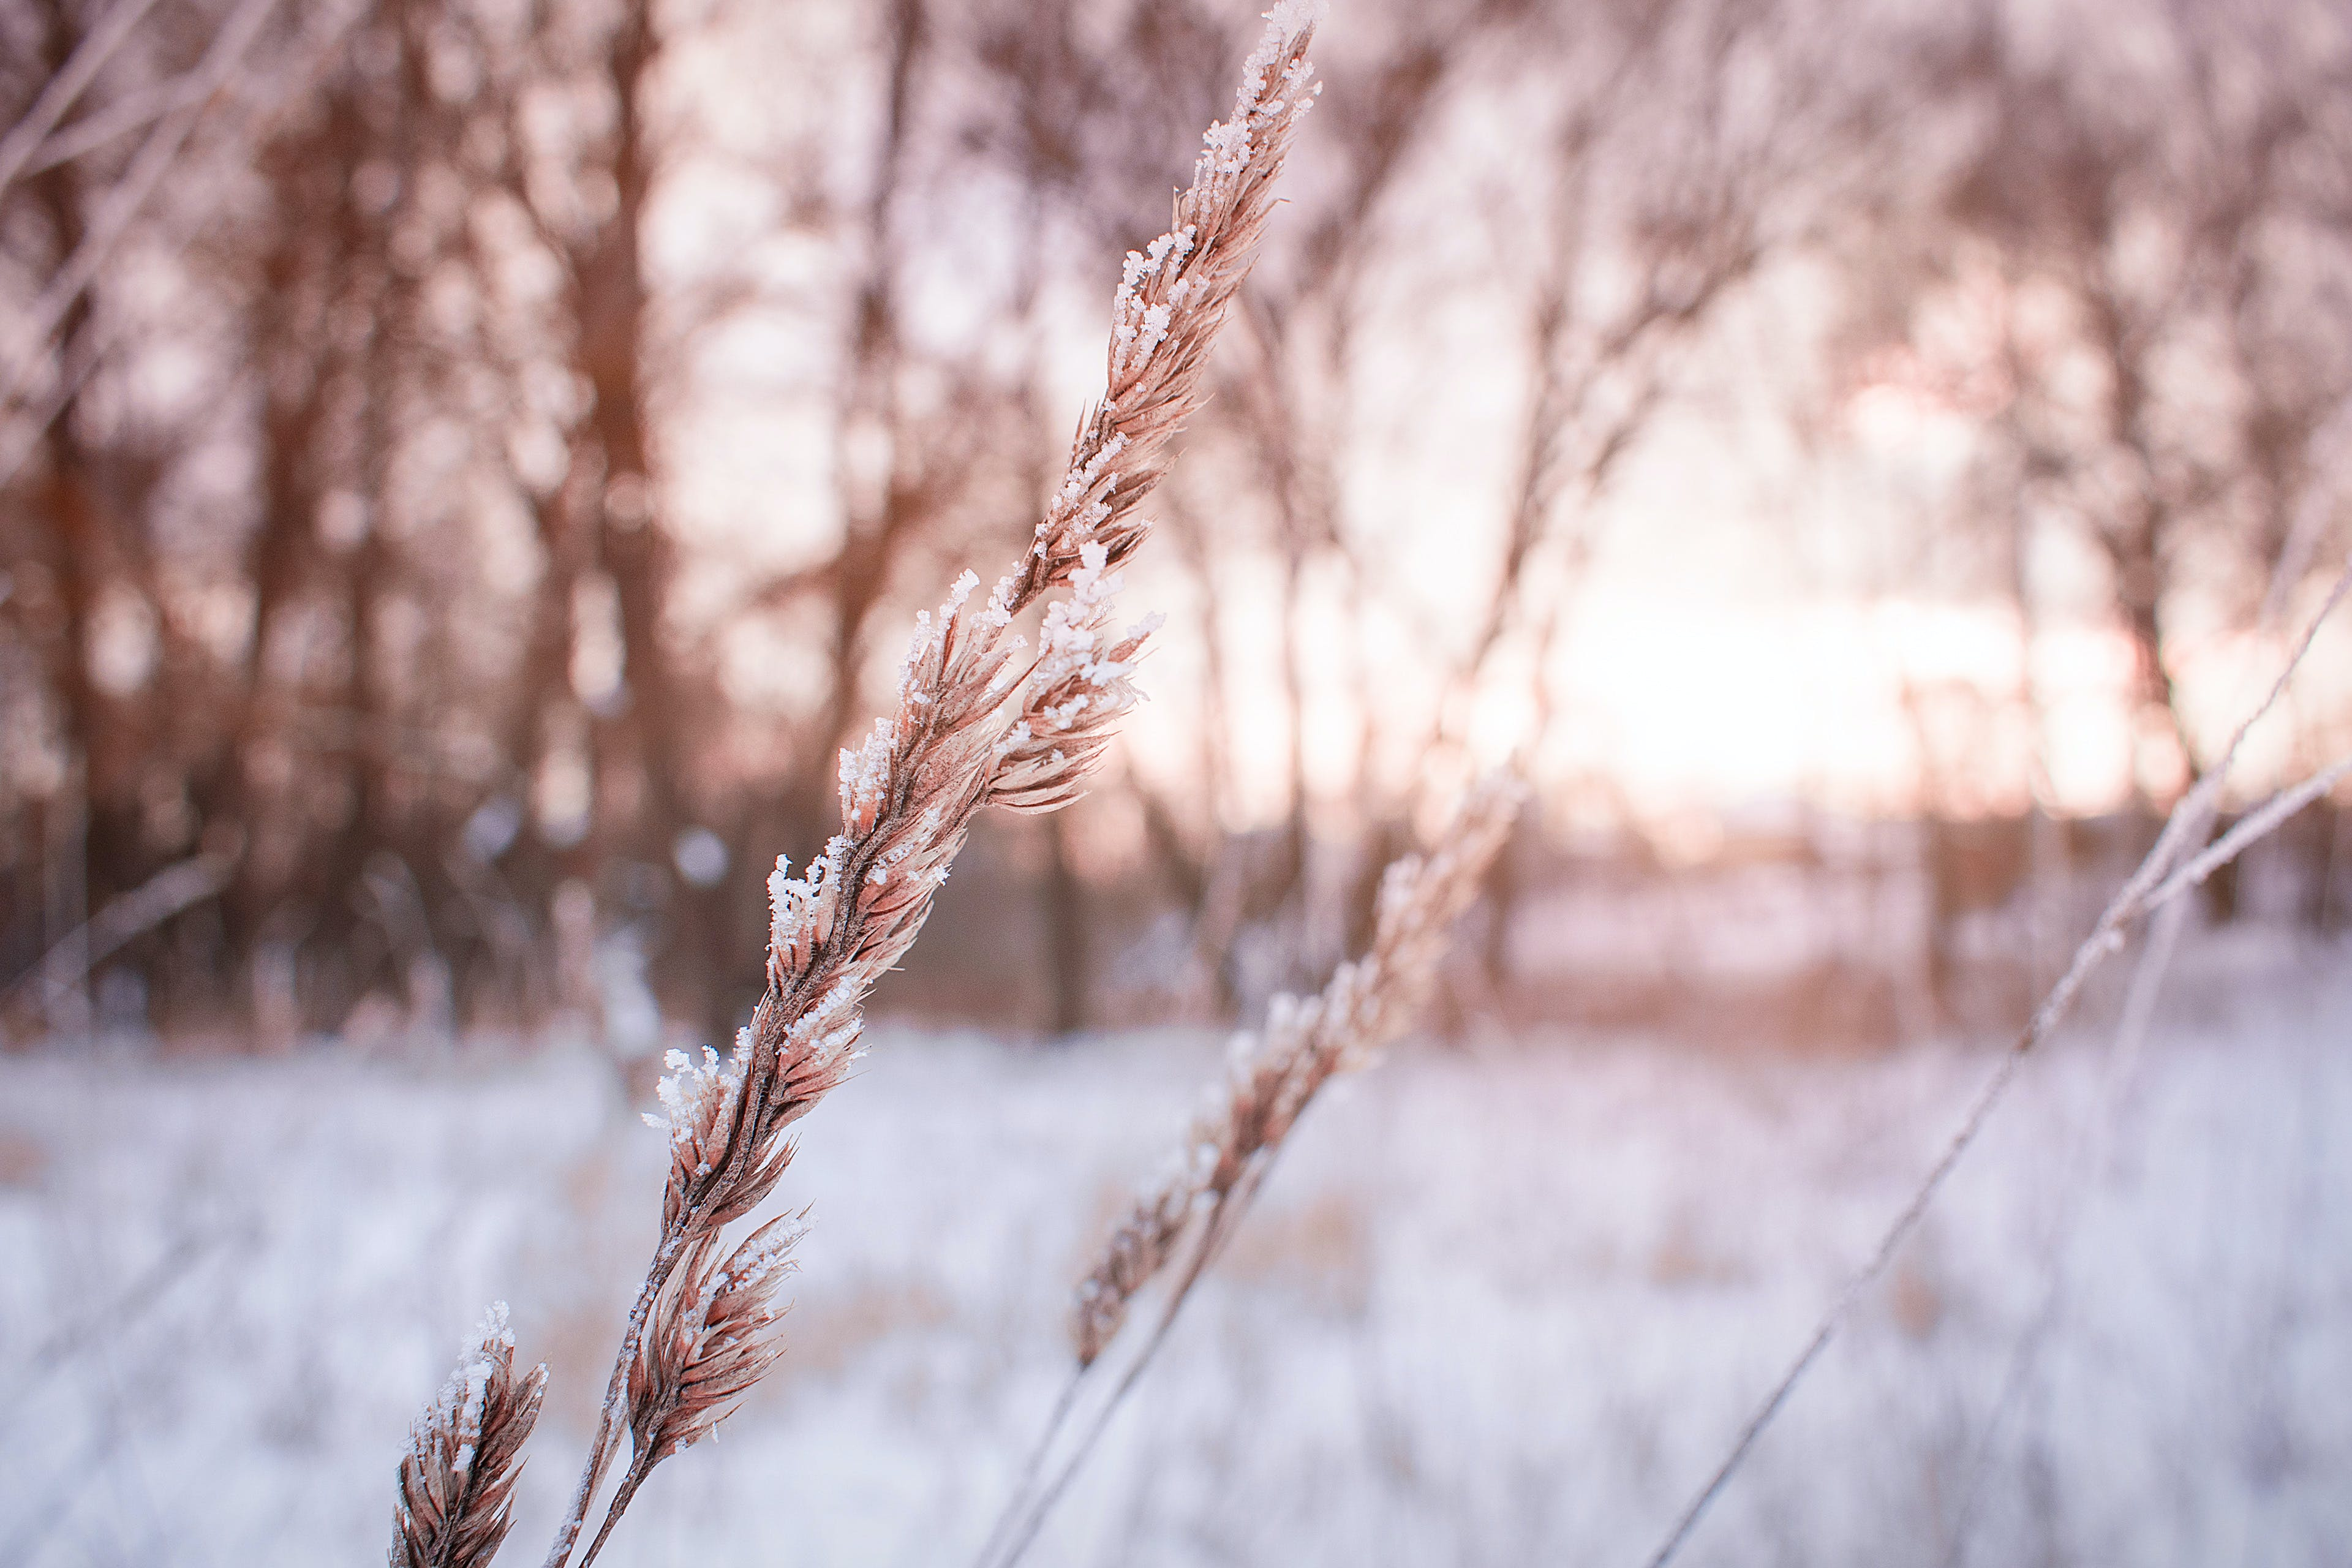 Shallow Focus Photography of Plant during winter